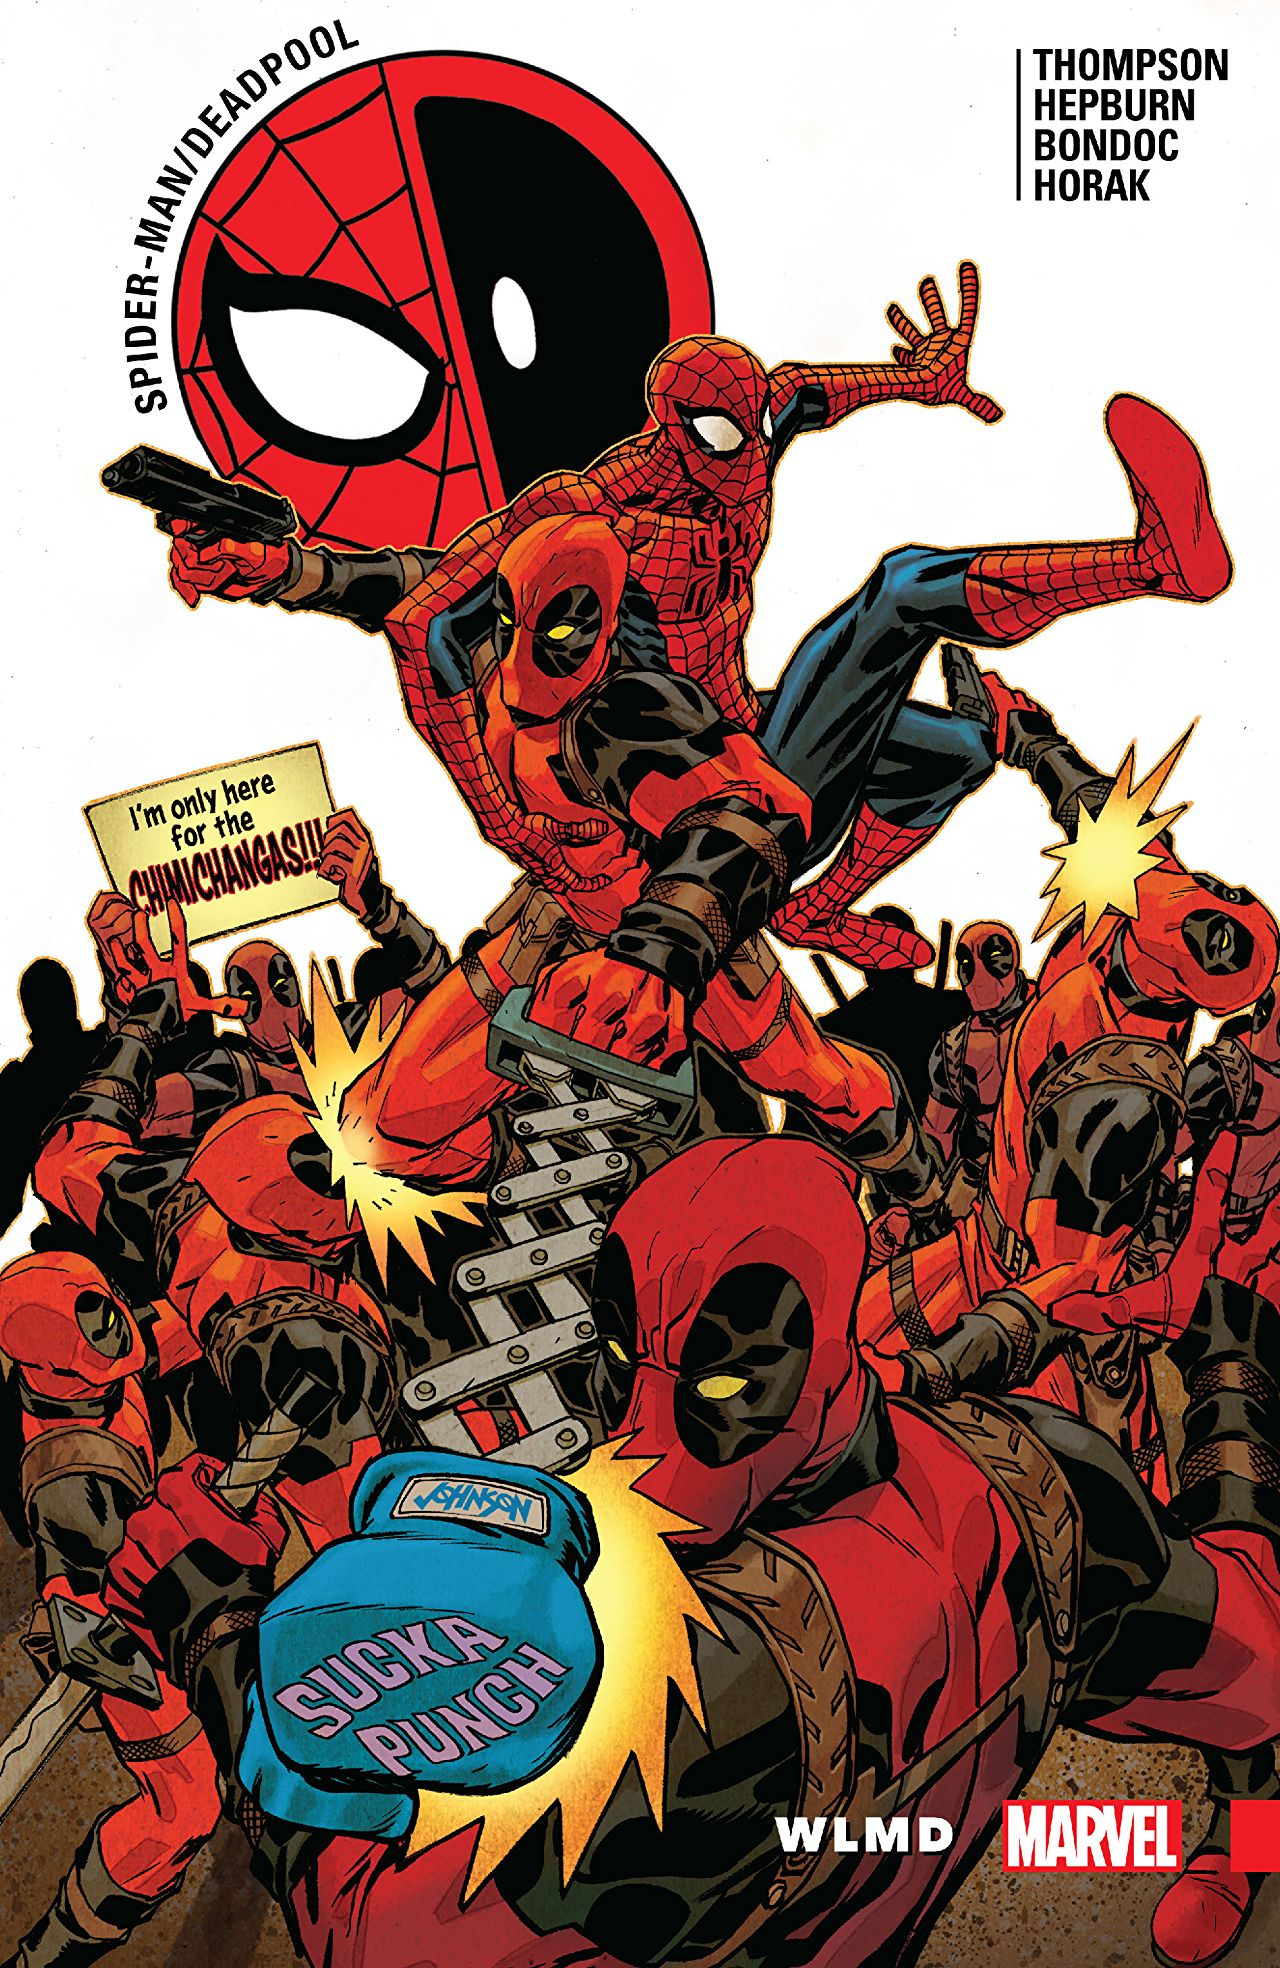 'Spider-Man/Deadpool Vol. 6: WLMD' review: Break the fourth wall with this hilarious book